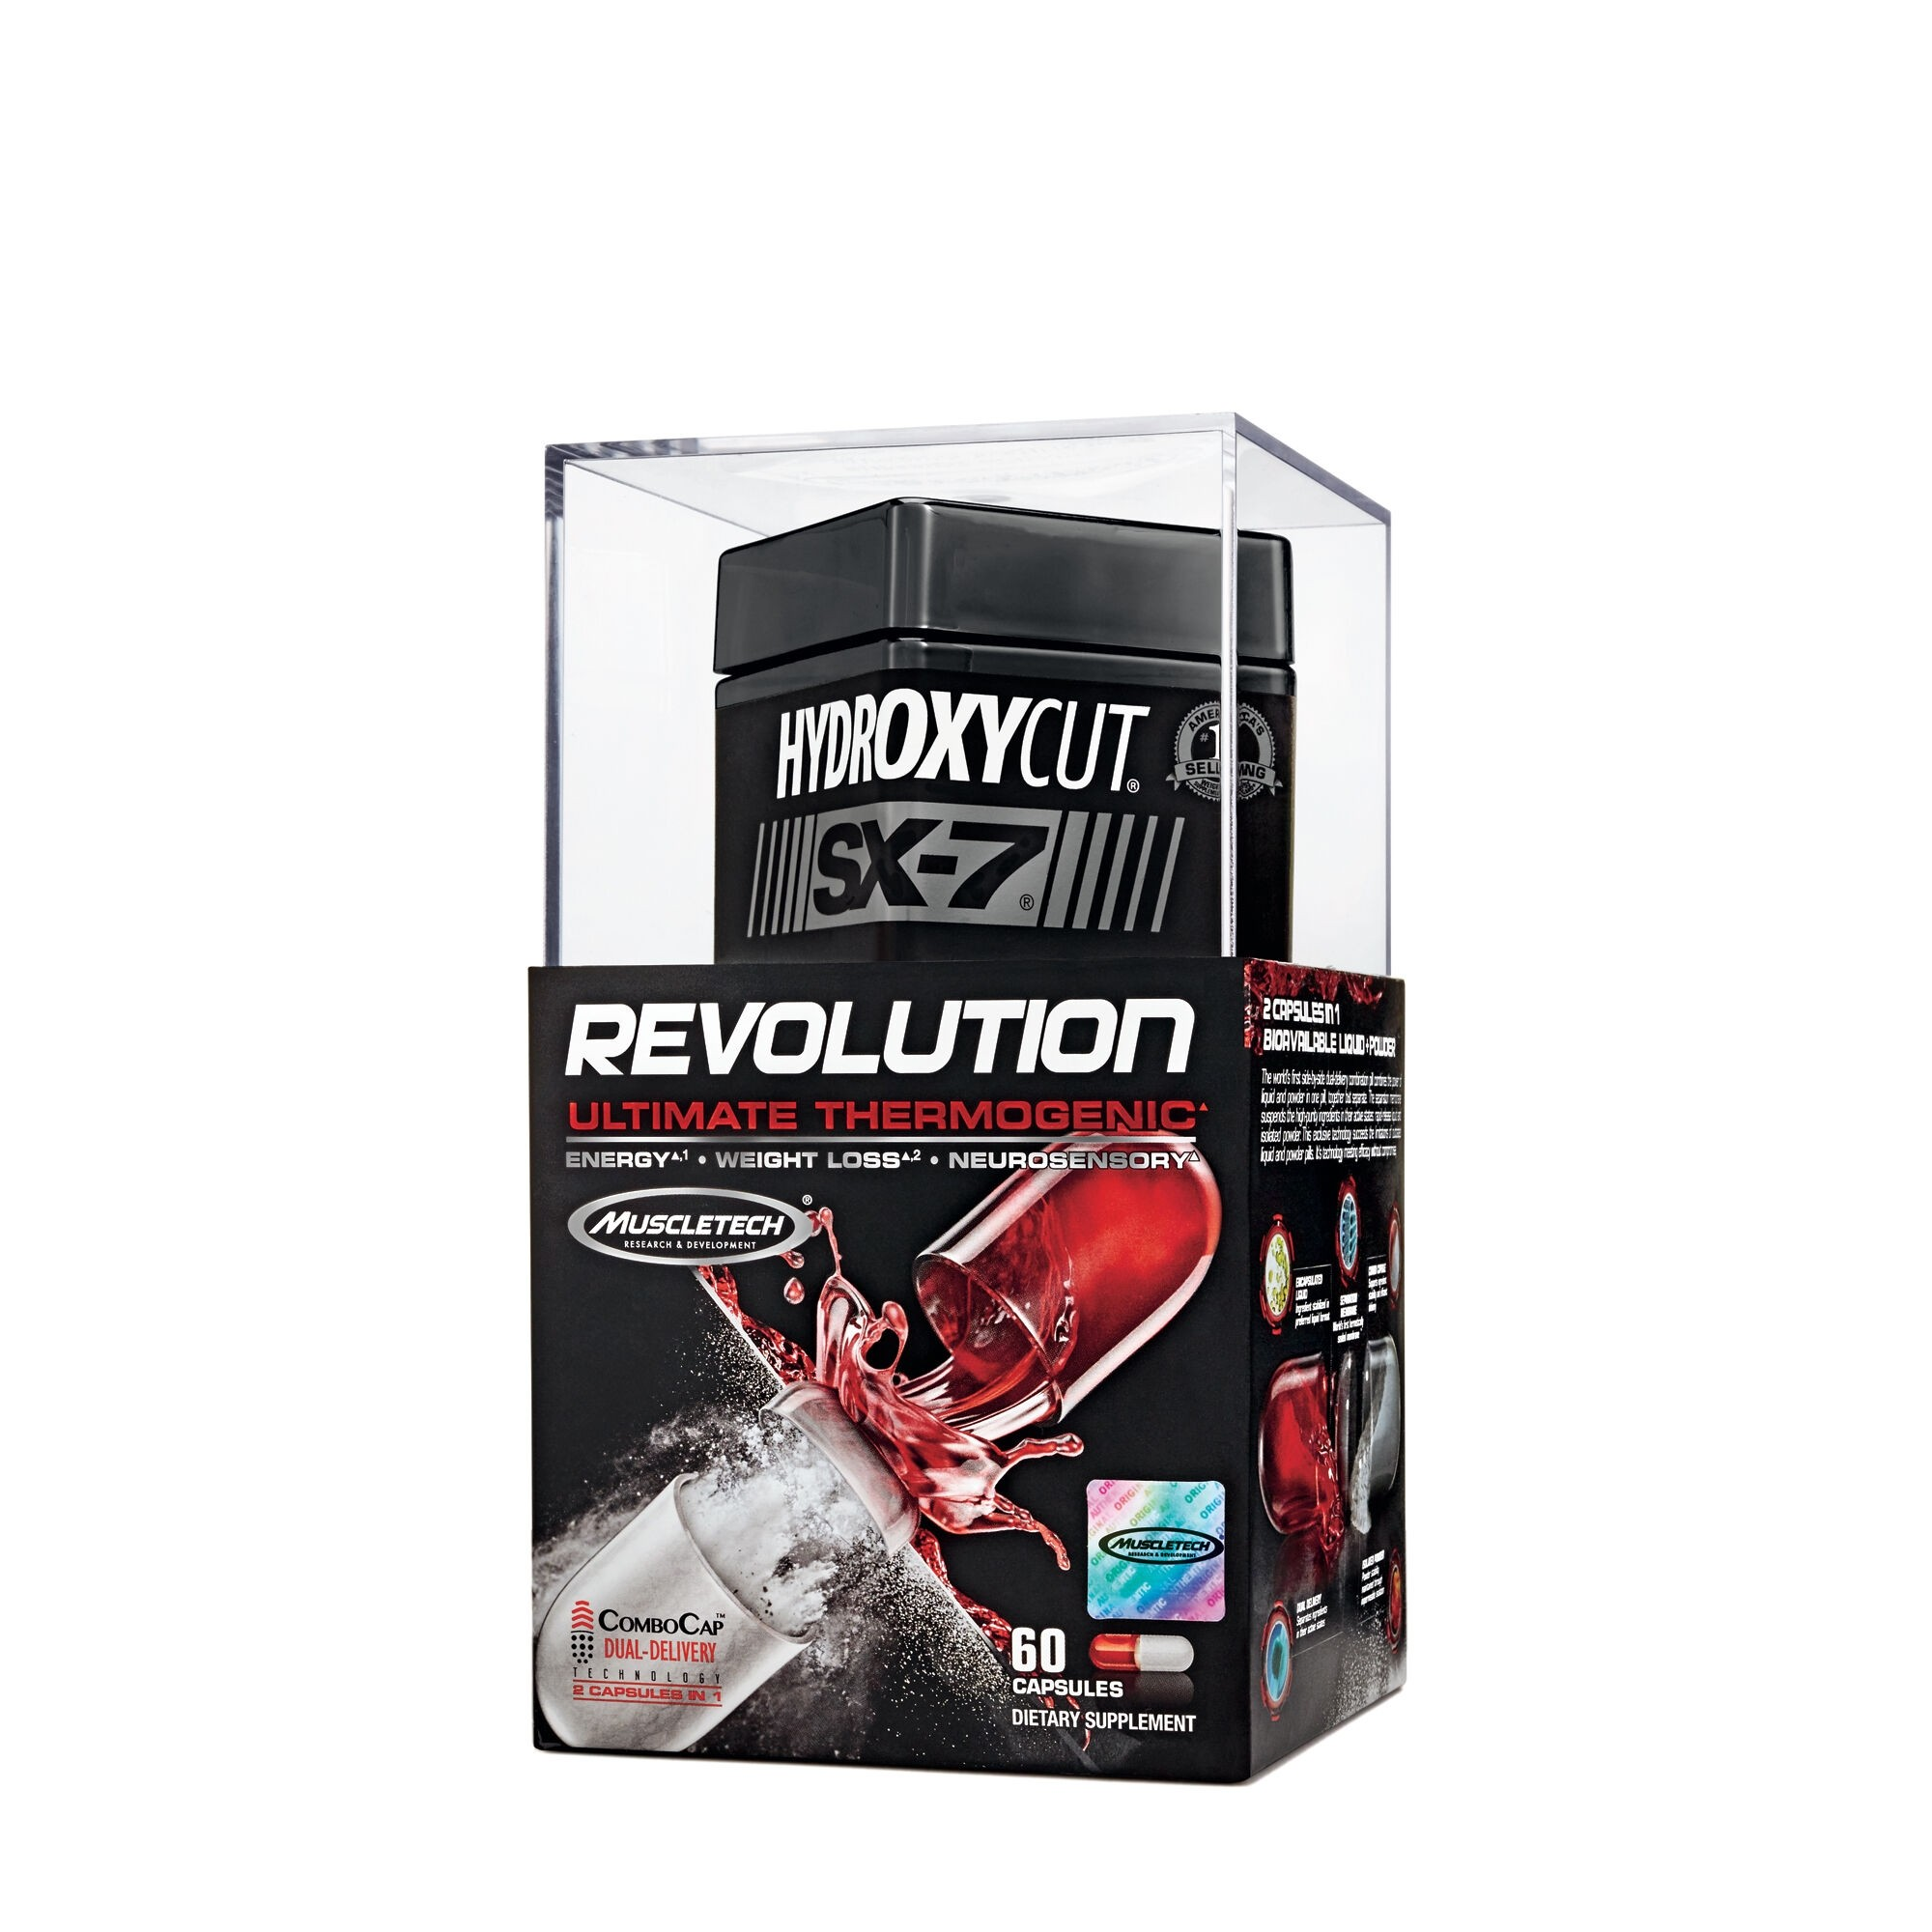 Hydroxycut® SX-7 Revolution Ultimate Thermogenic, 60 cps